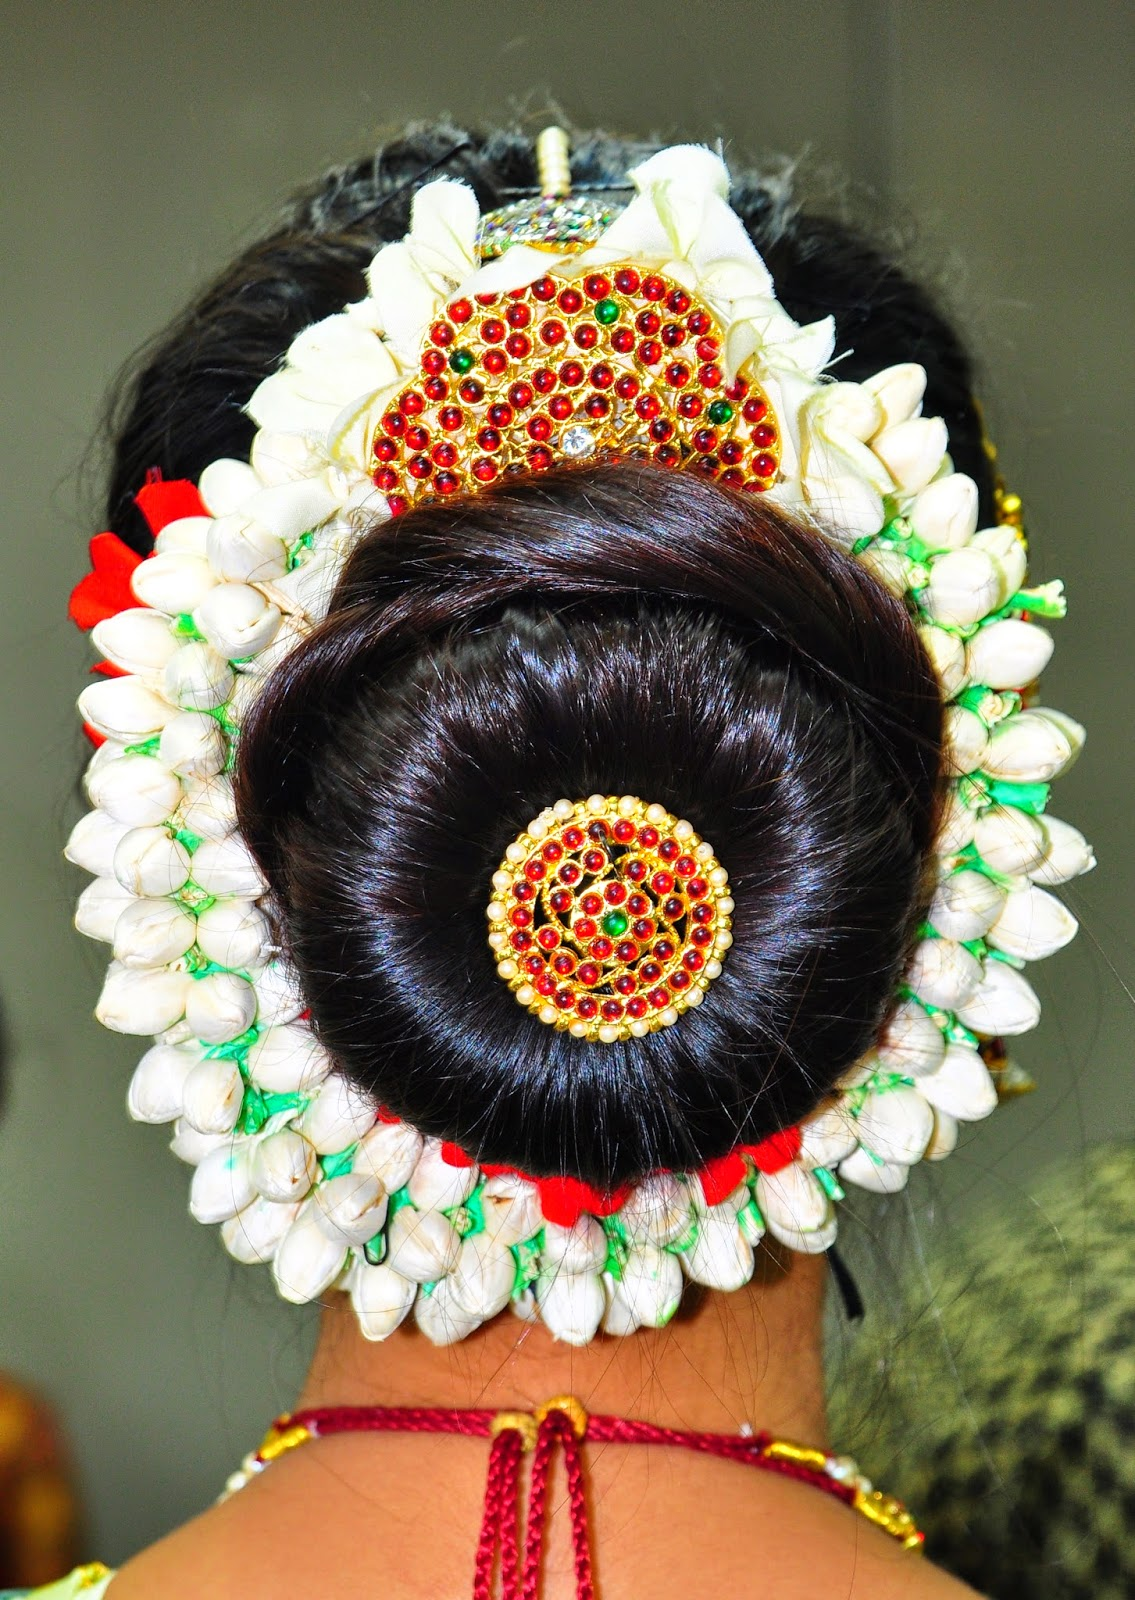 bharatanatyam hair style pushpaarpanam different hair styles and 8134 | DSC 0638